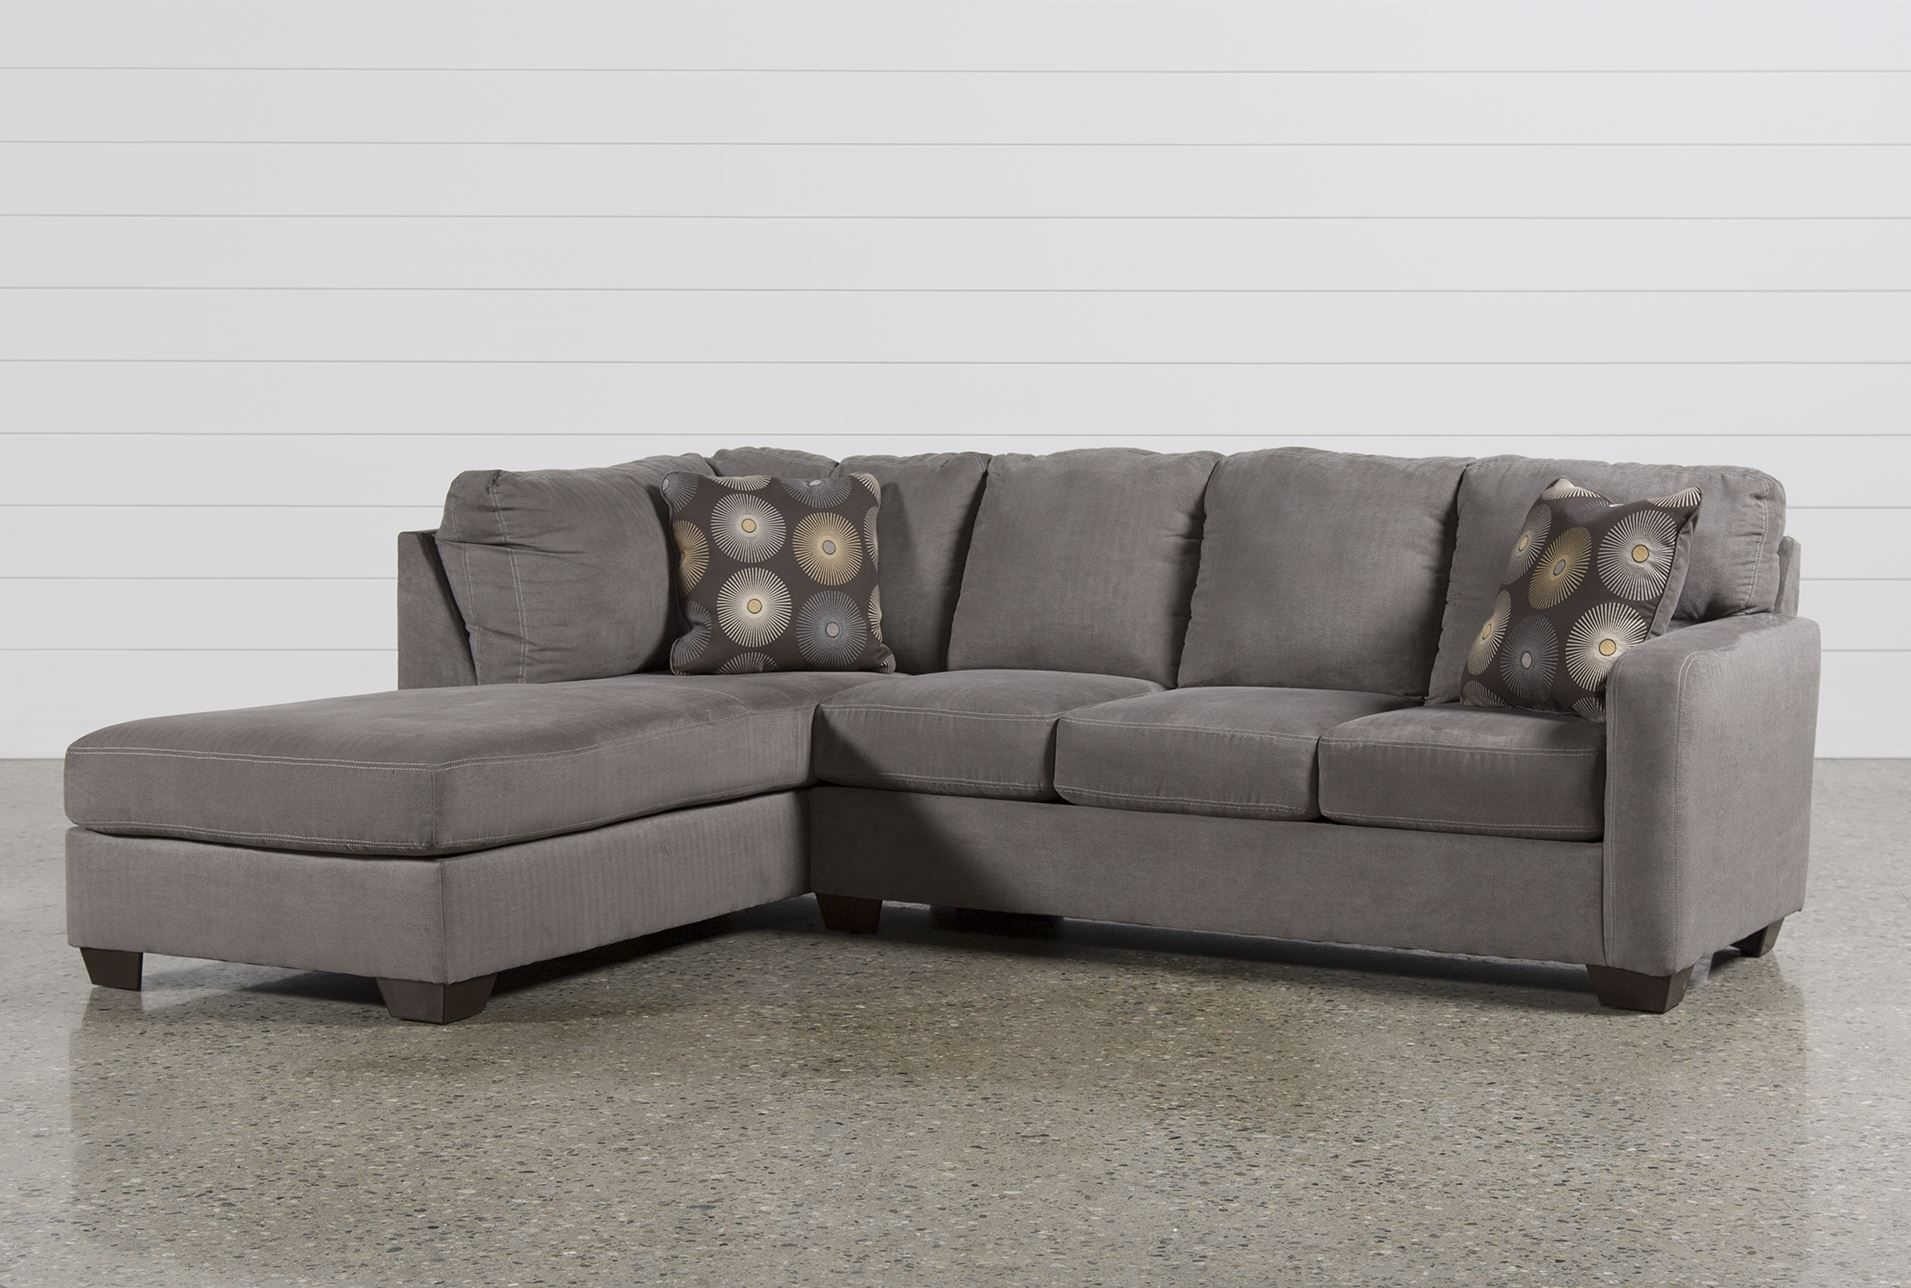 Zella Charcoal 2 Piece Sectional W/laf Chaise - Signature with Aspen 2 Piece Sleeper Sectionals With Laf Chaise